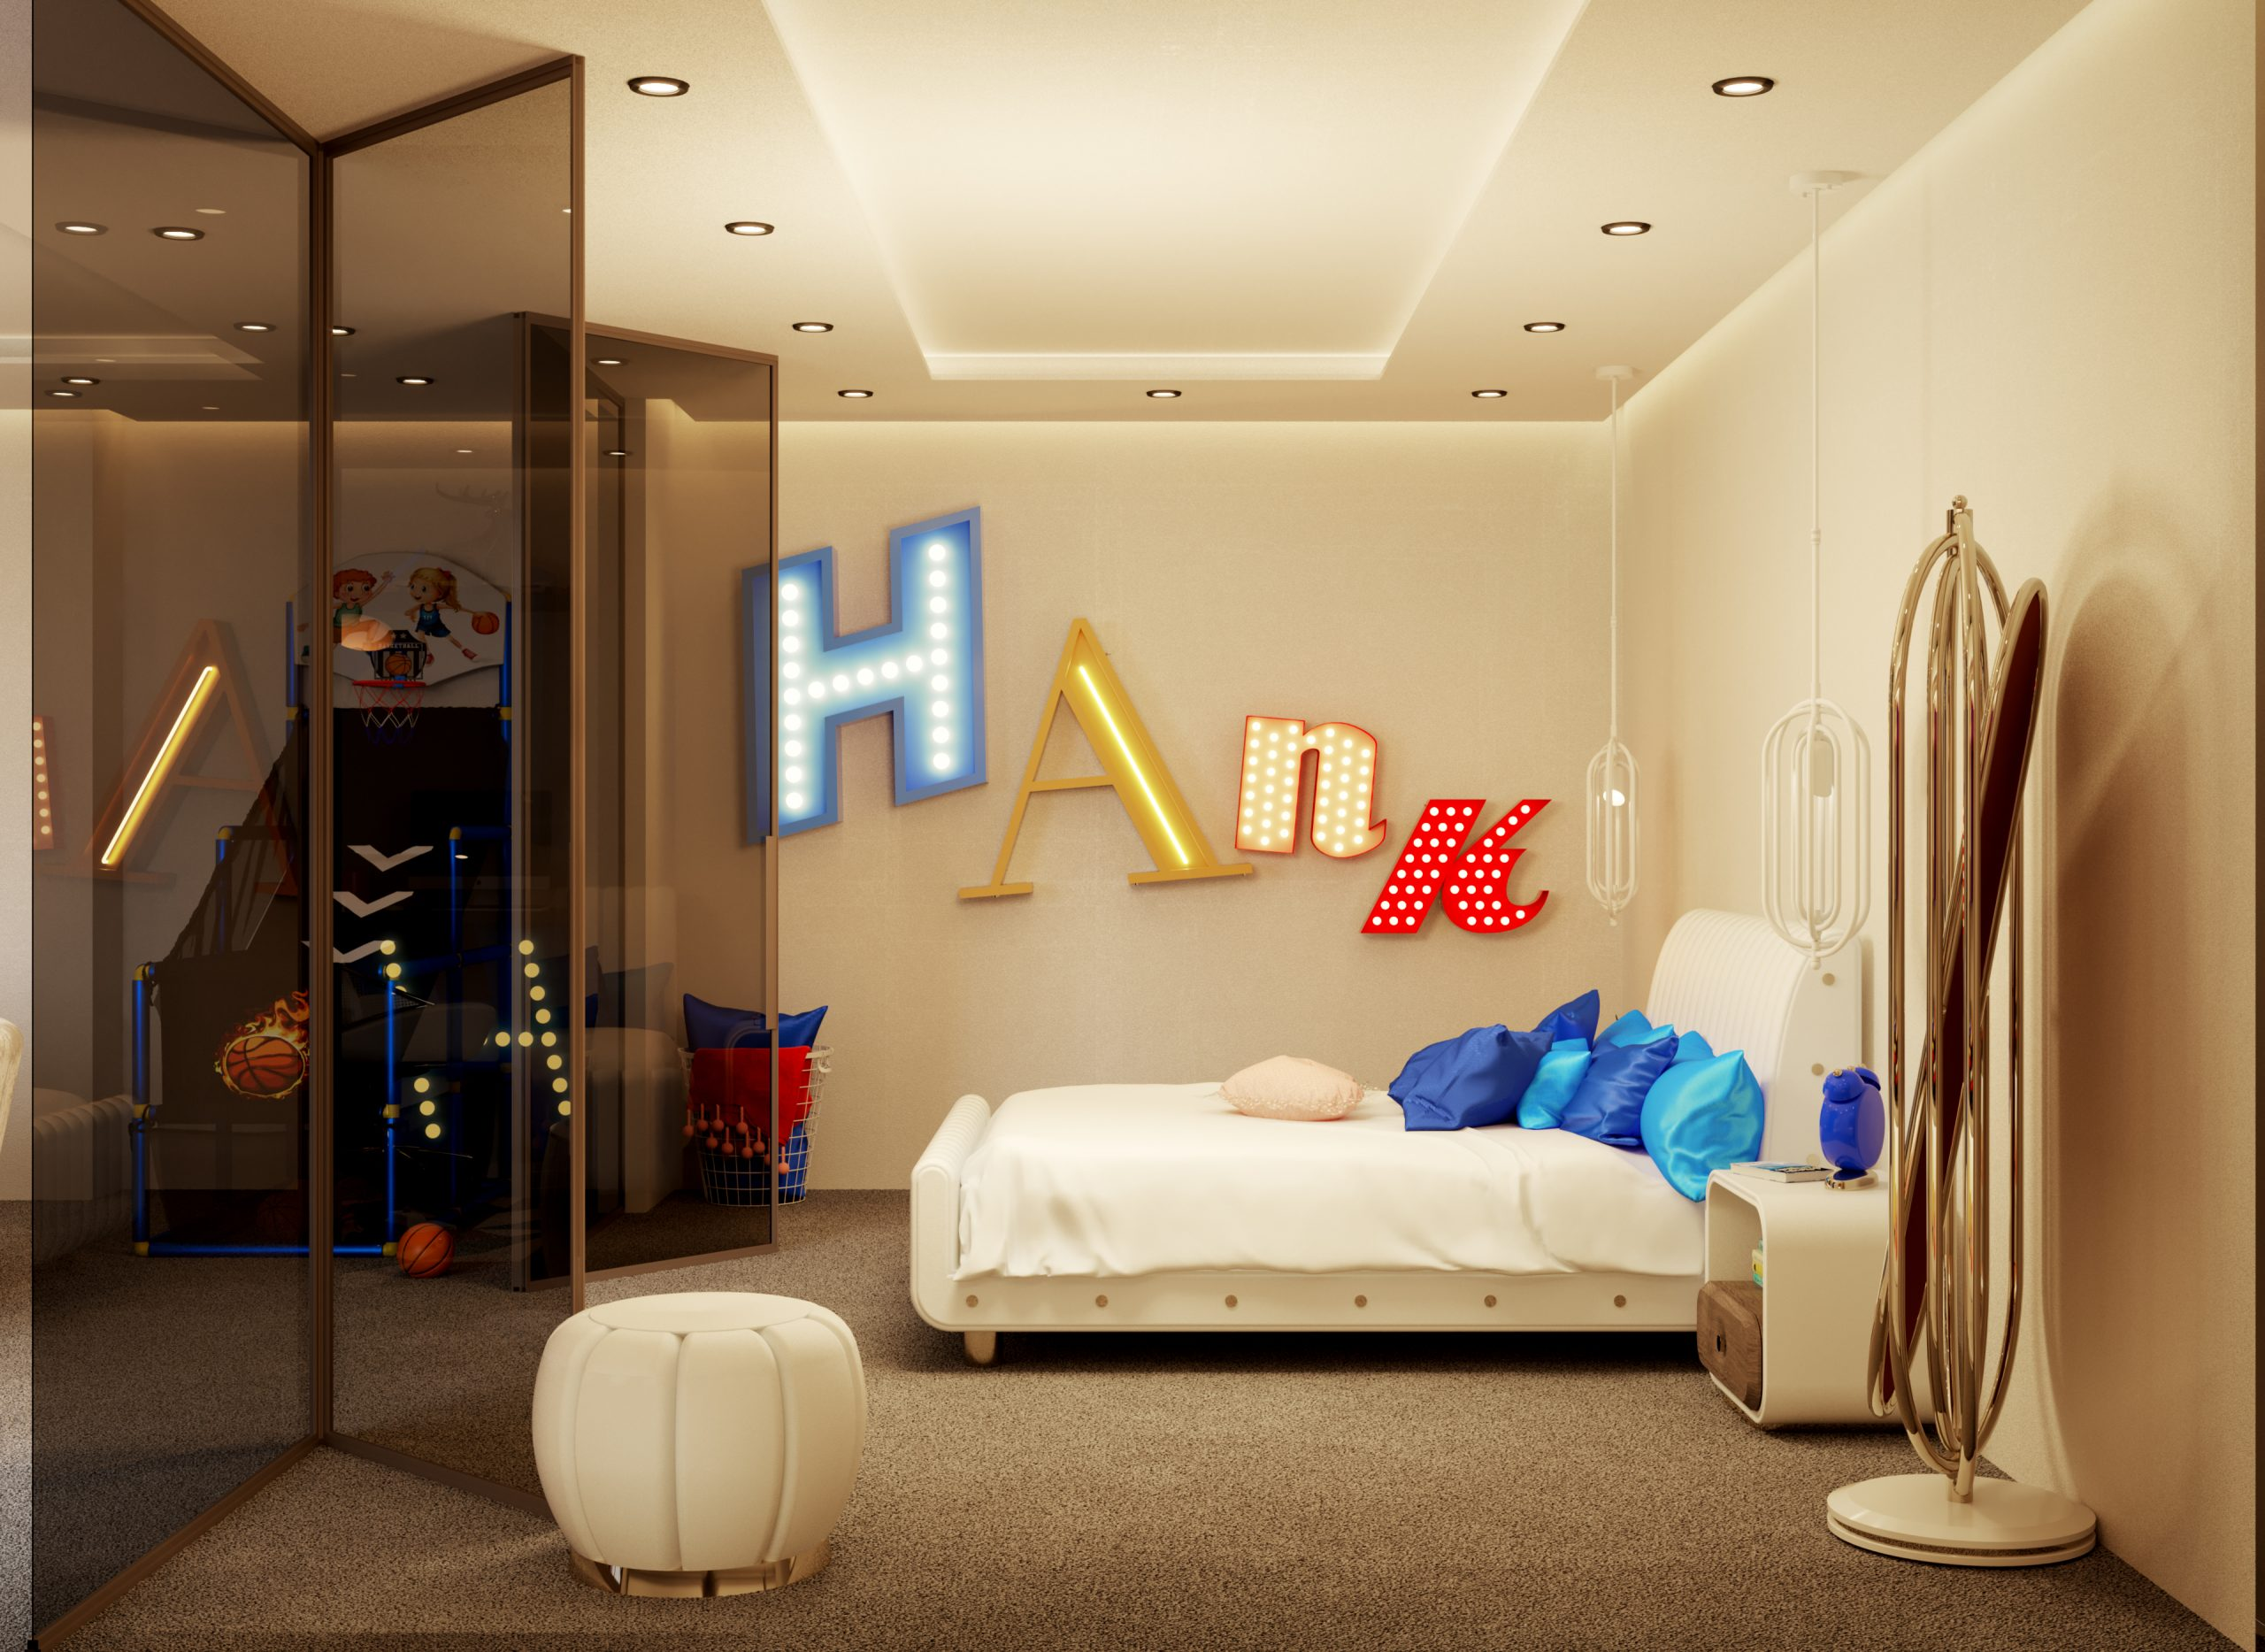 Bedroom Design Ideas That Your Kids Will Fall In Love With